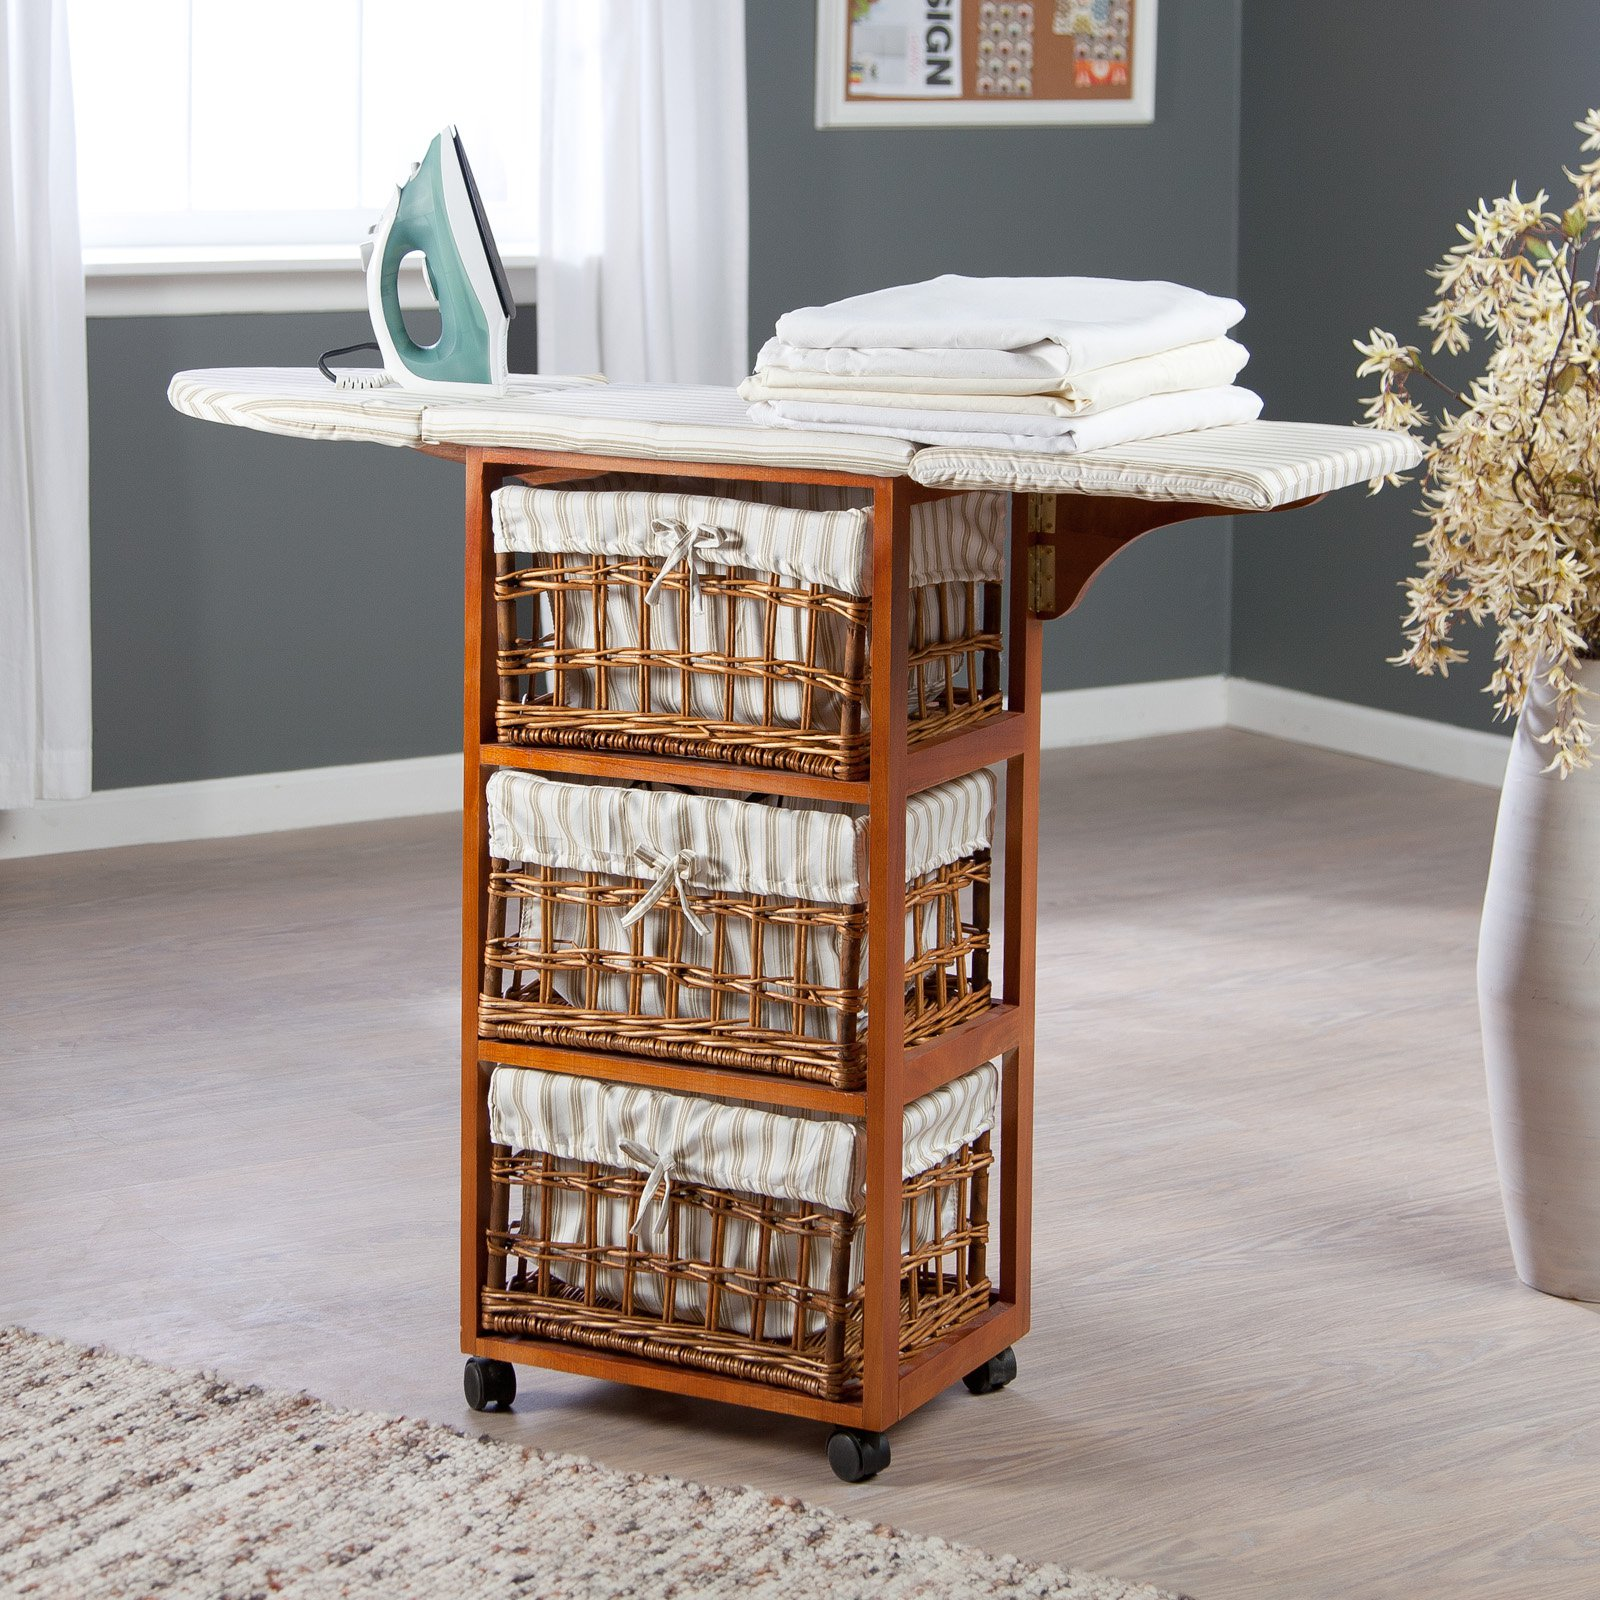 & Showtime Wood Wicker Ironing Board Center with Baskets - Walmart.com